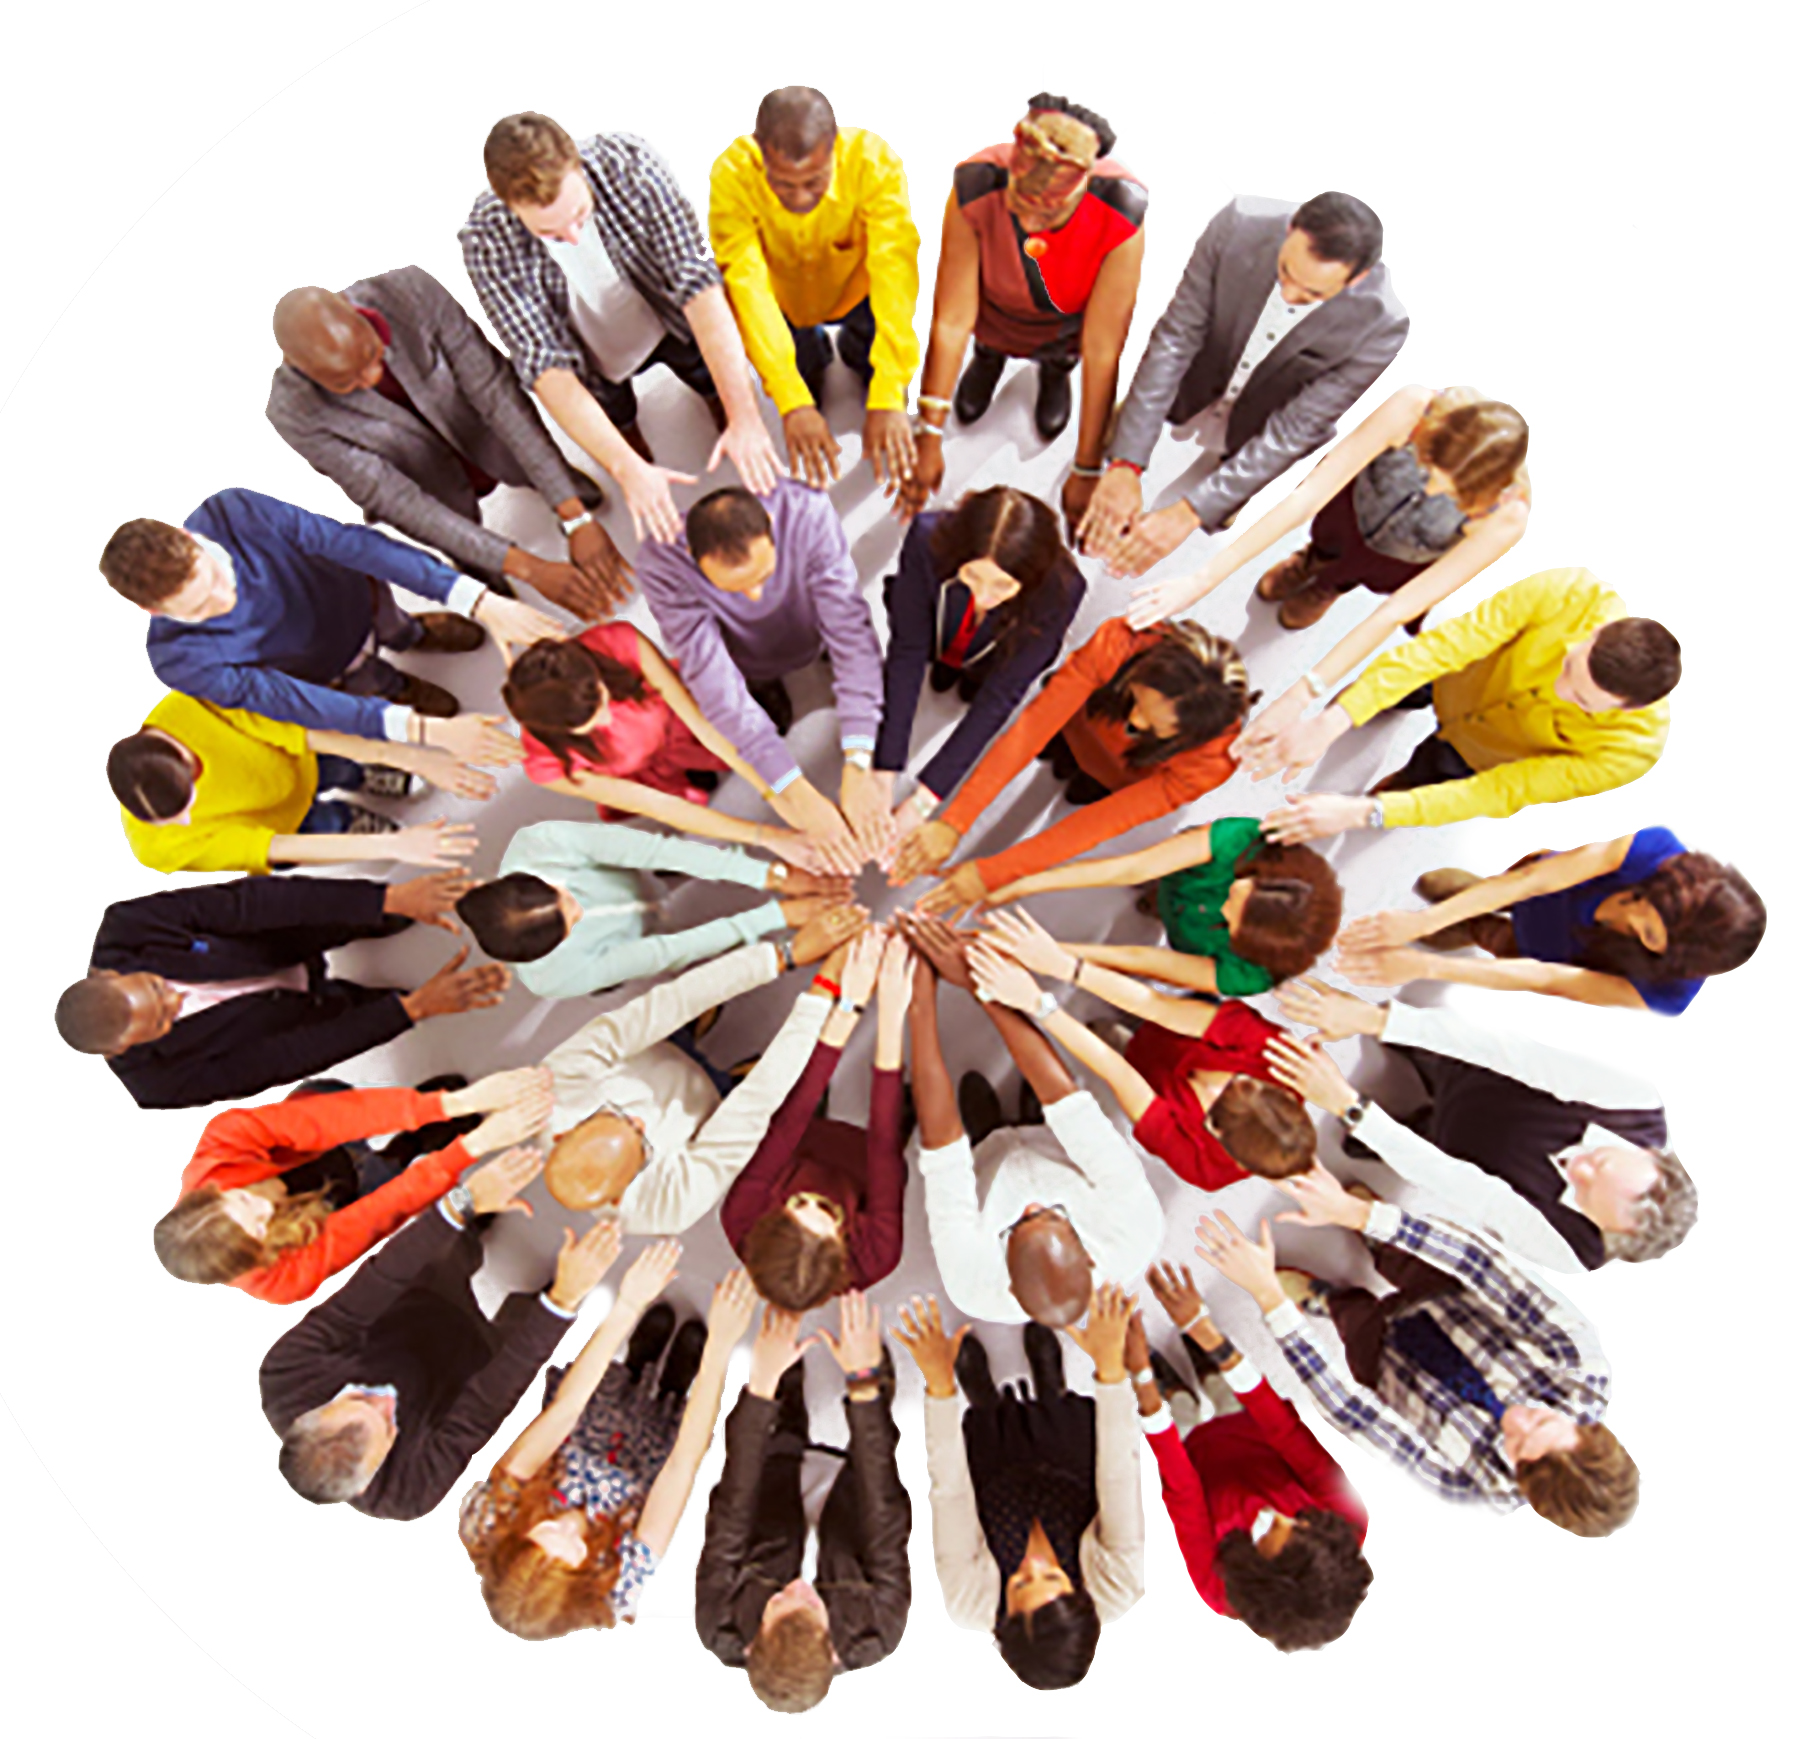 Business people touching hands in huddle